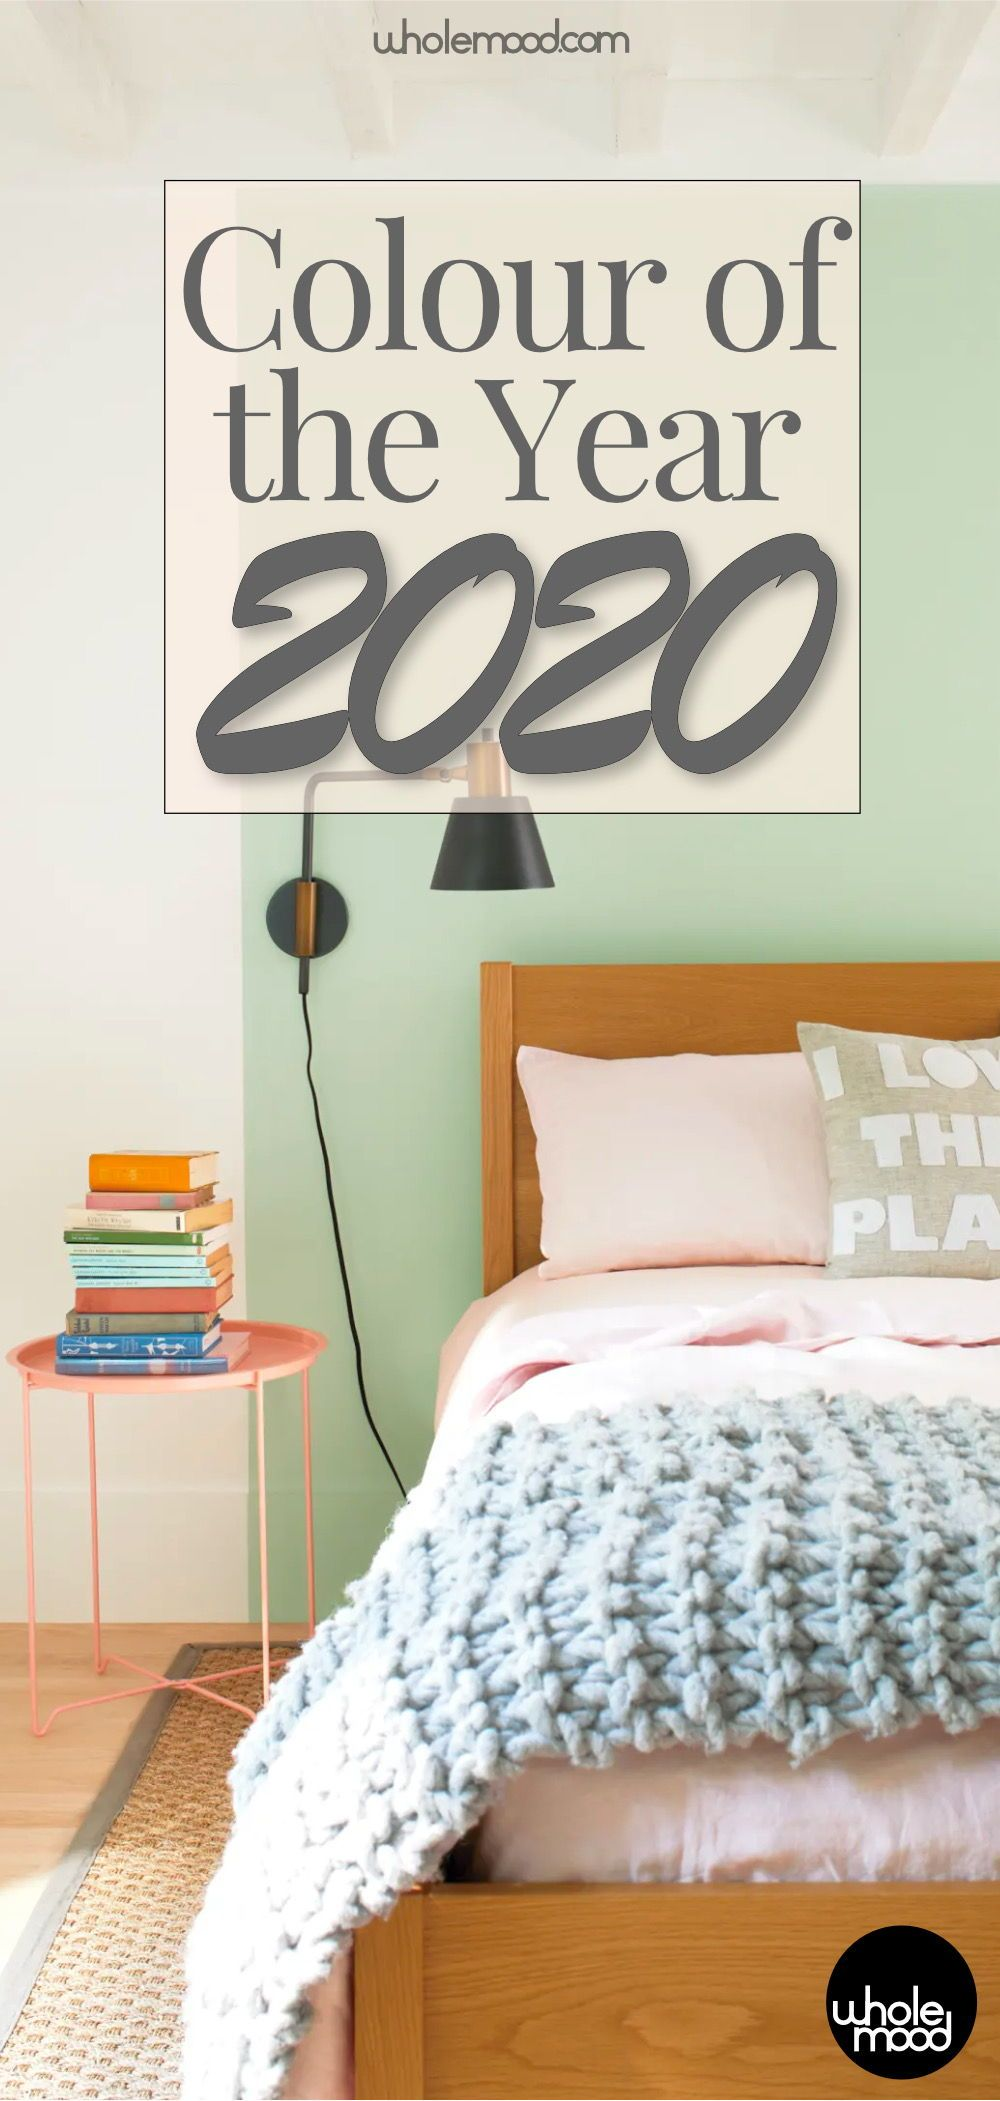 2020 2021 colour of the year new decade cool new tone on 2021 interior paint color trends id=64488